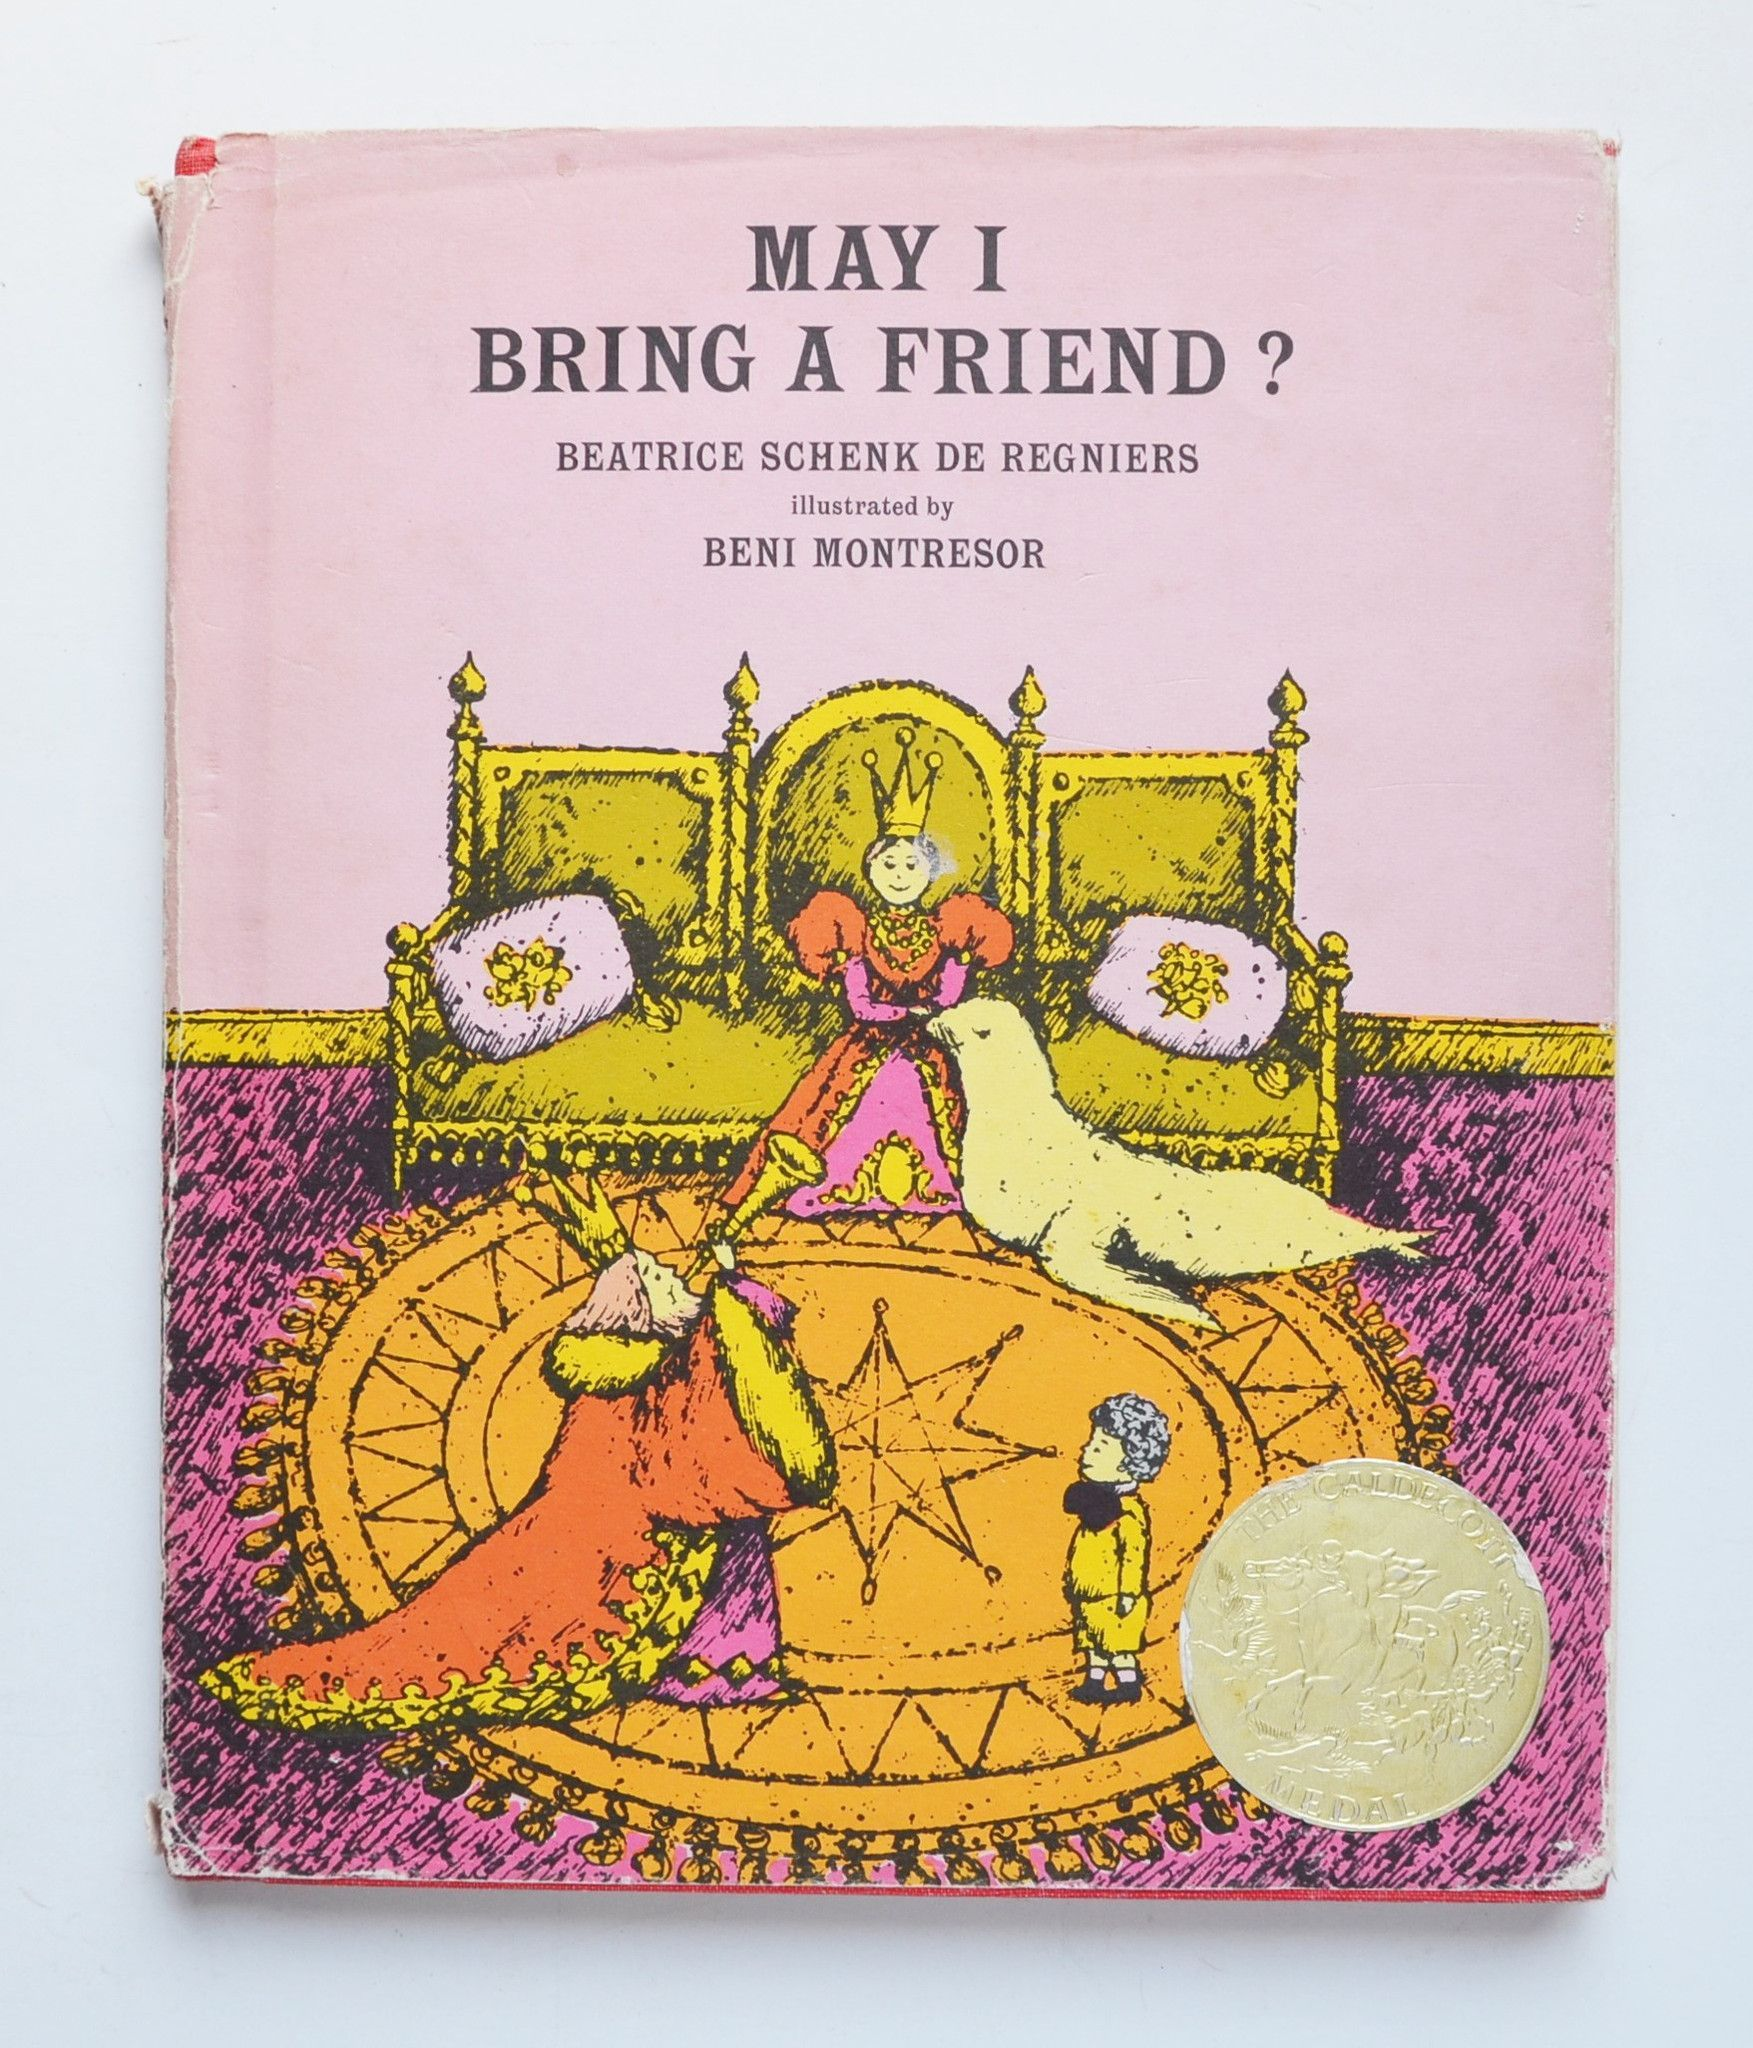 May I Bring A Friend By Beatrice Schenk De Regniers Illustrated